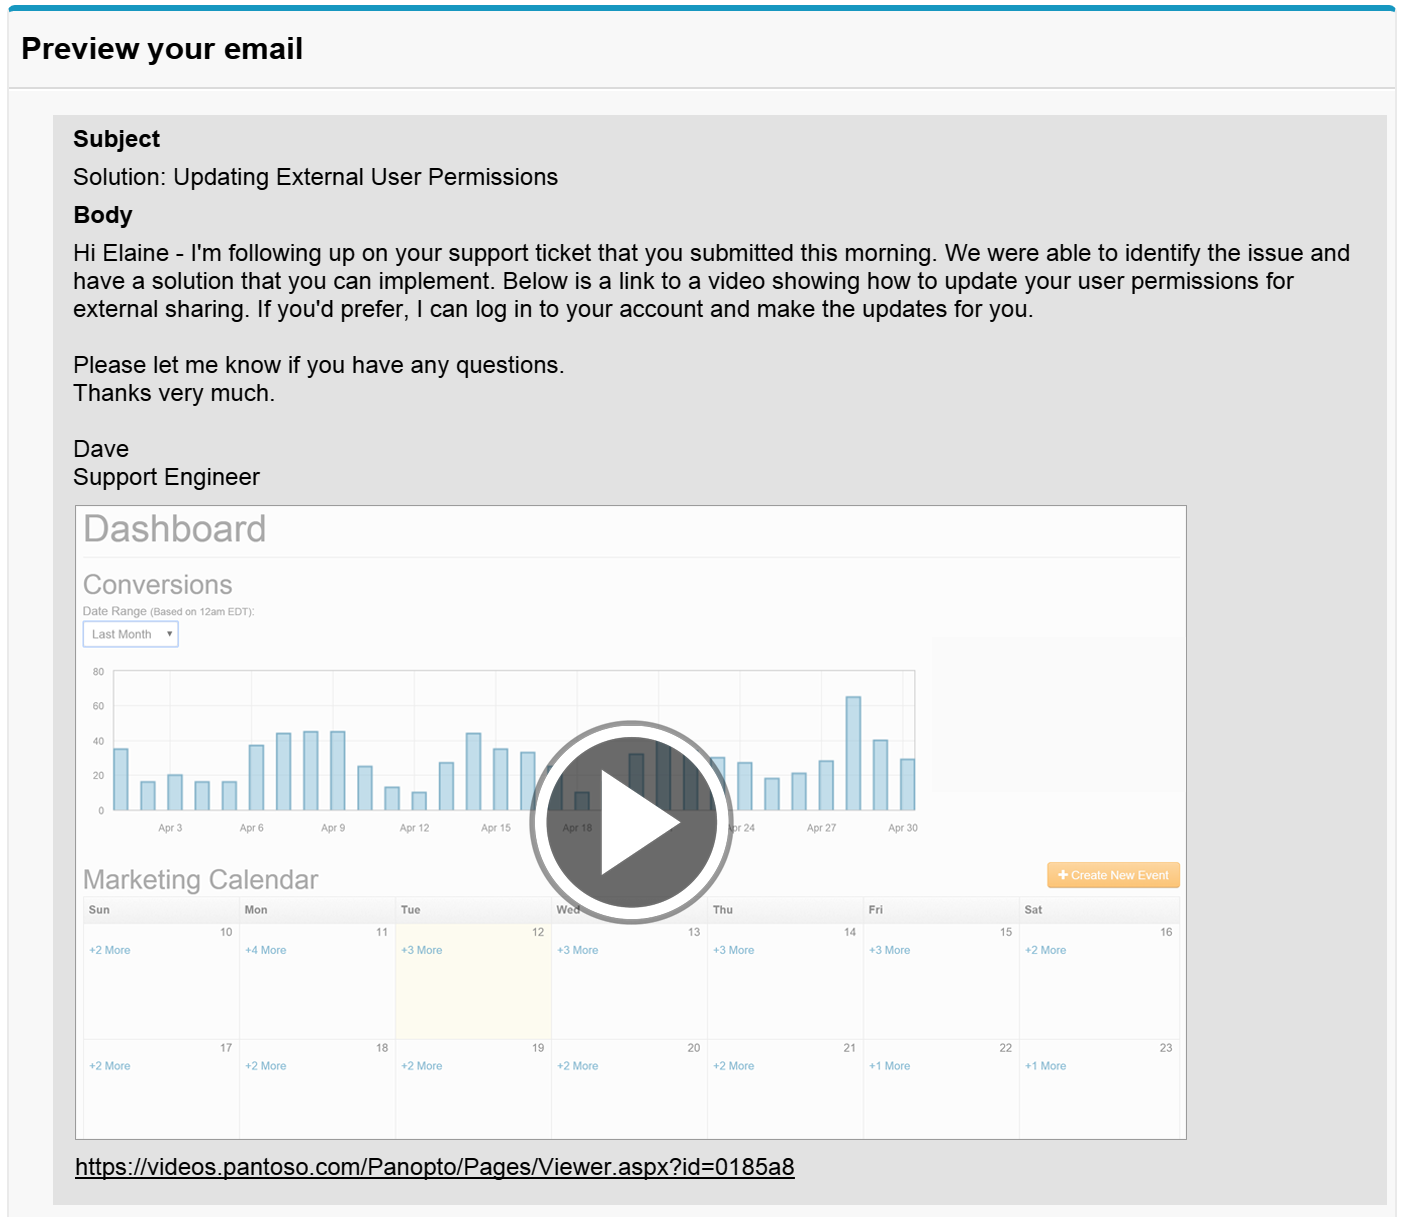 Salesforce Integration - Email Preview